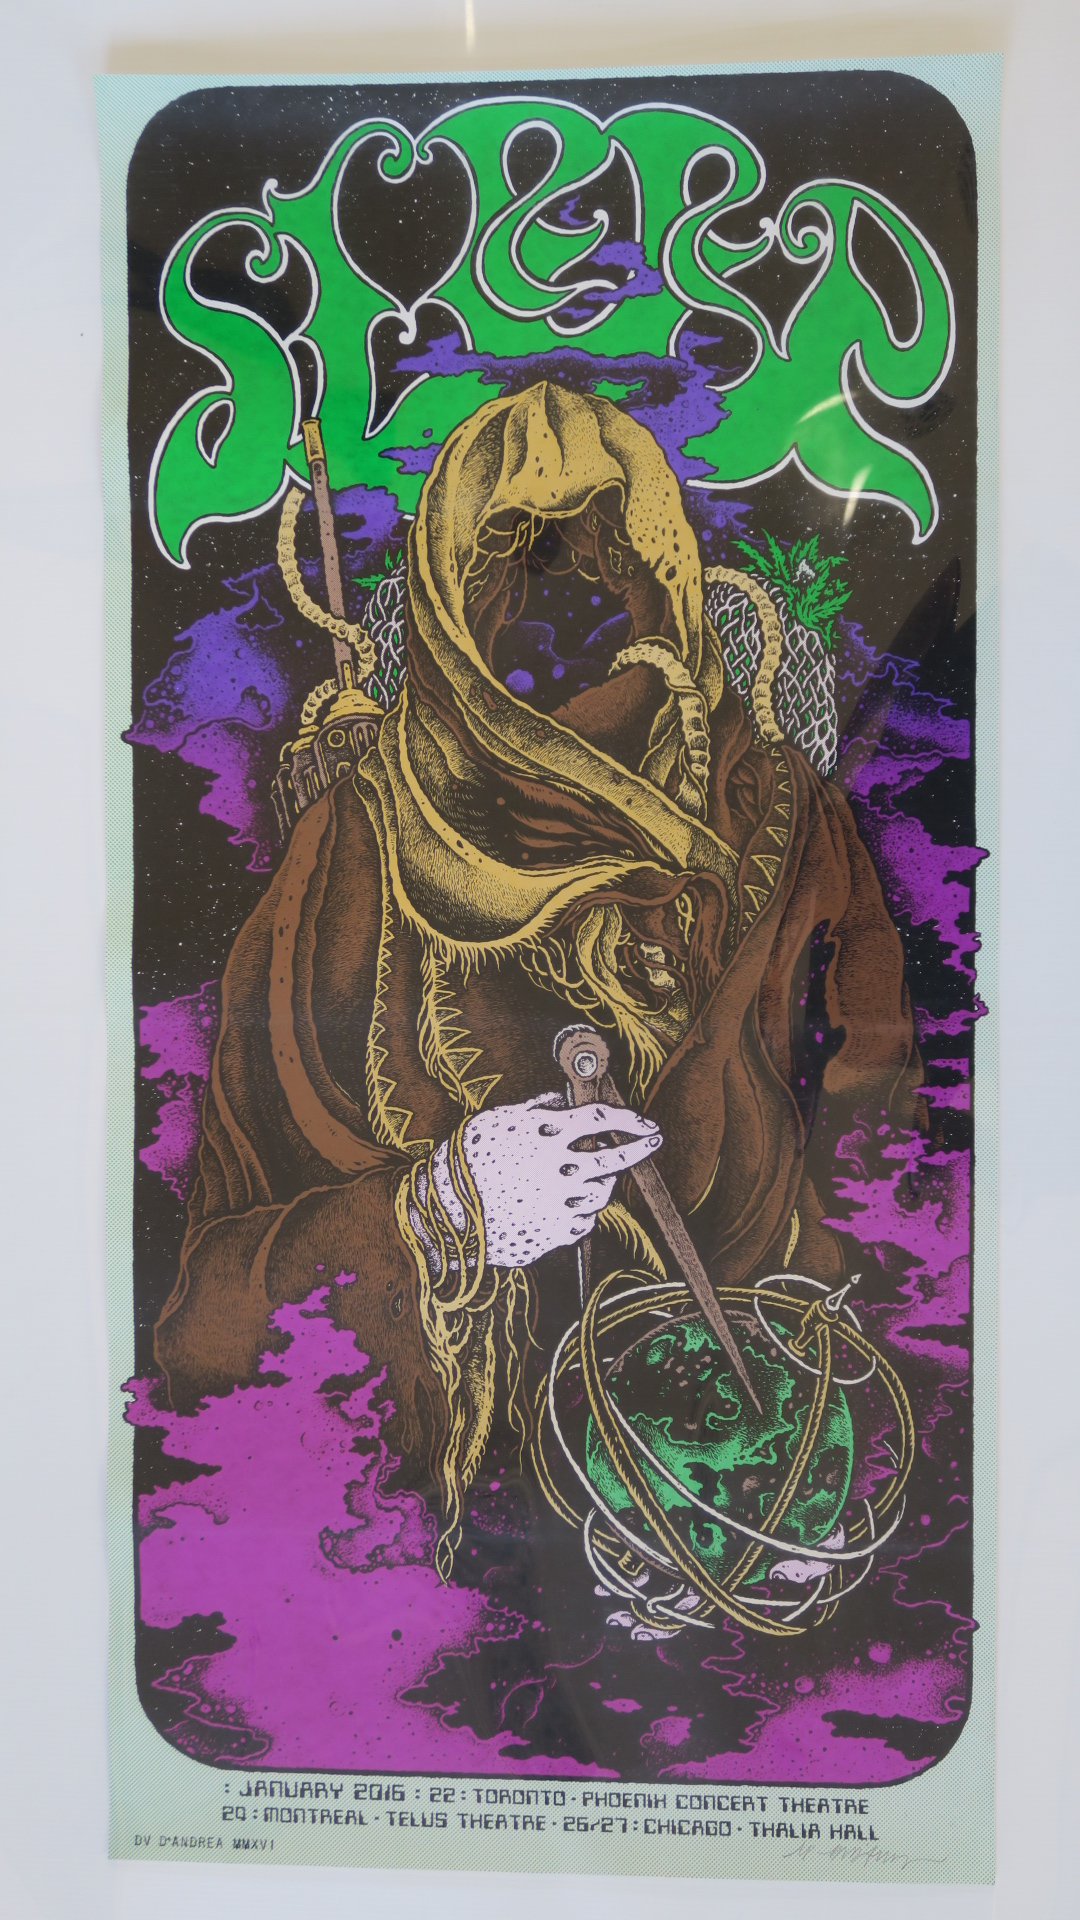 Lot 46 - Collection of limited edition screenprints inc January 2016 Toronto Phoenix concert theatre poster